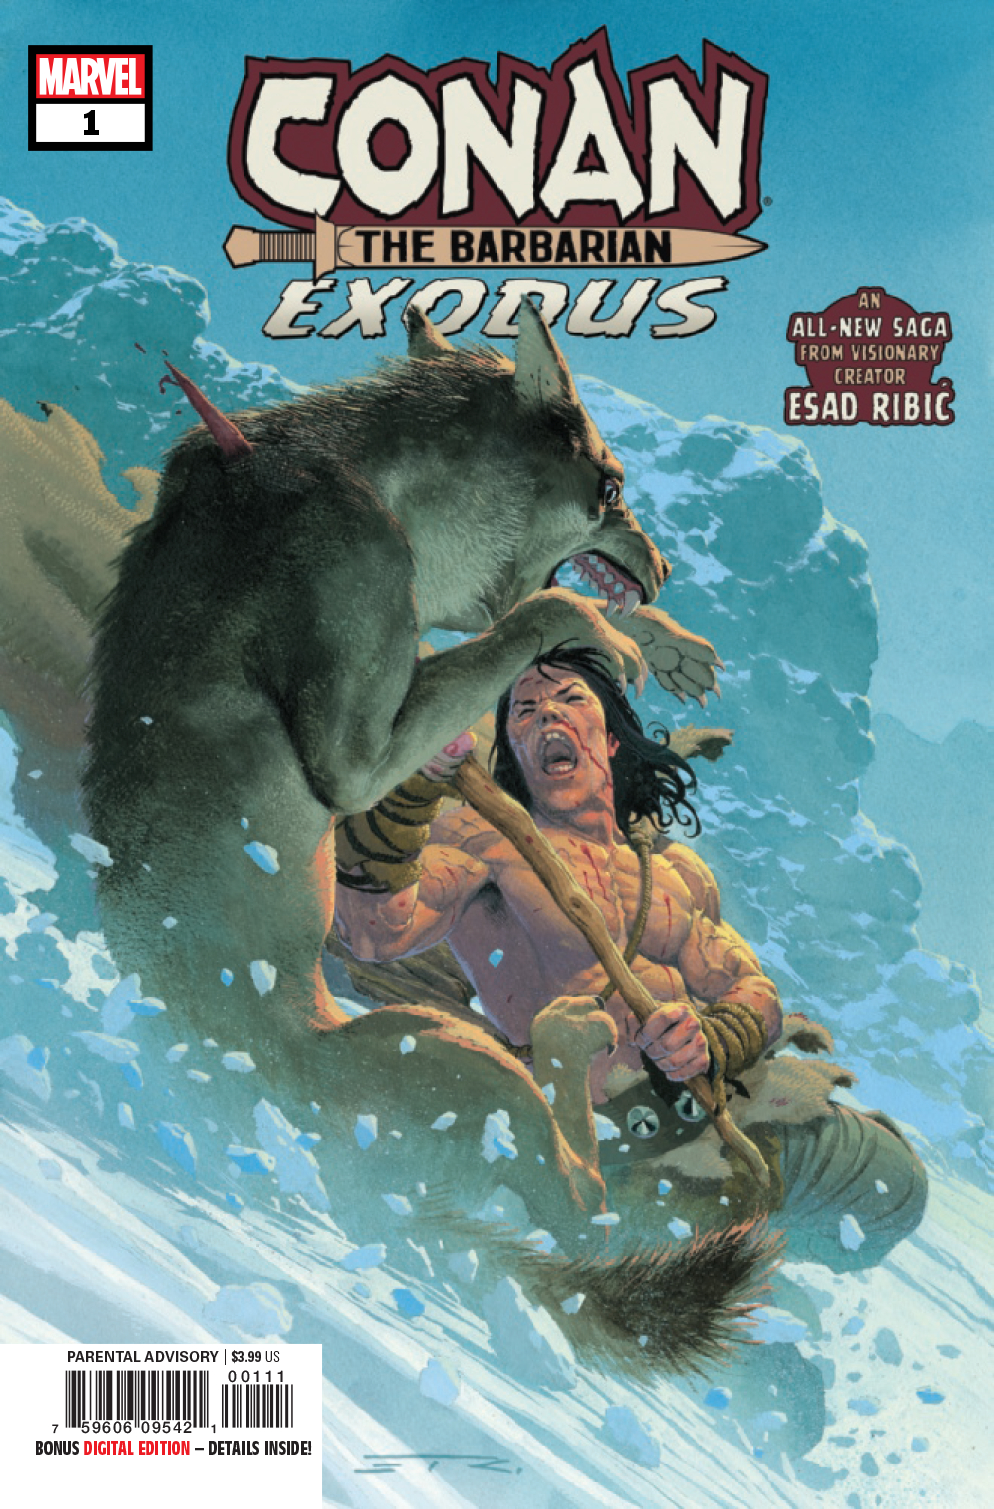 CONAN THE BARBARIAN EXODUS #1